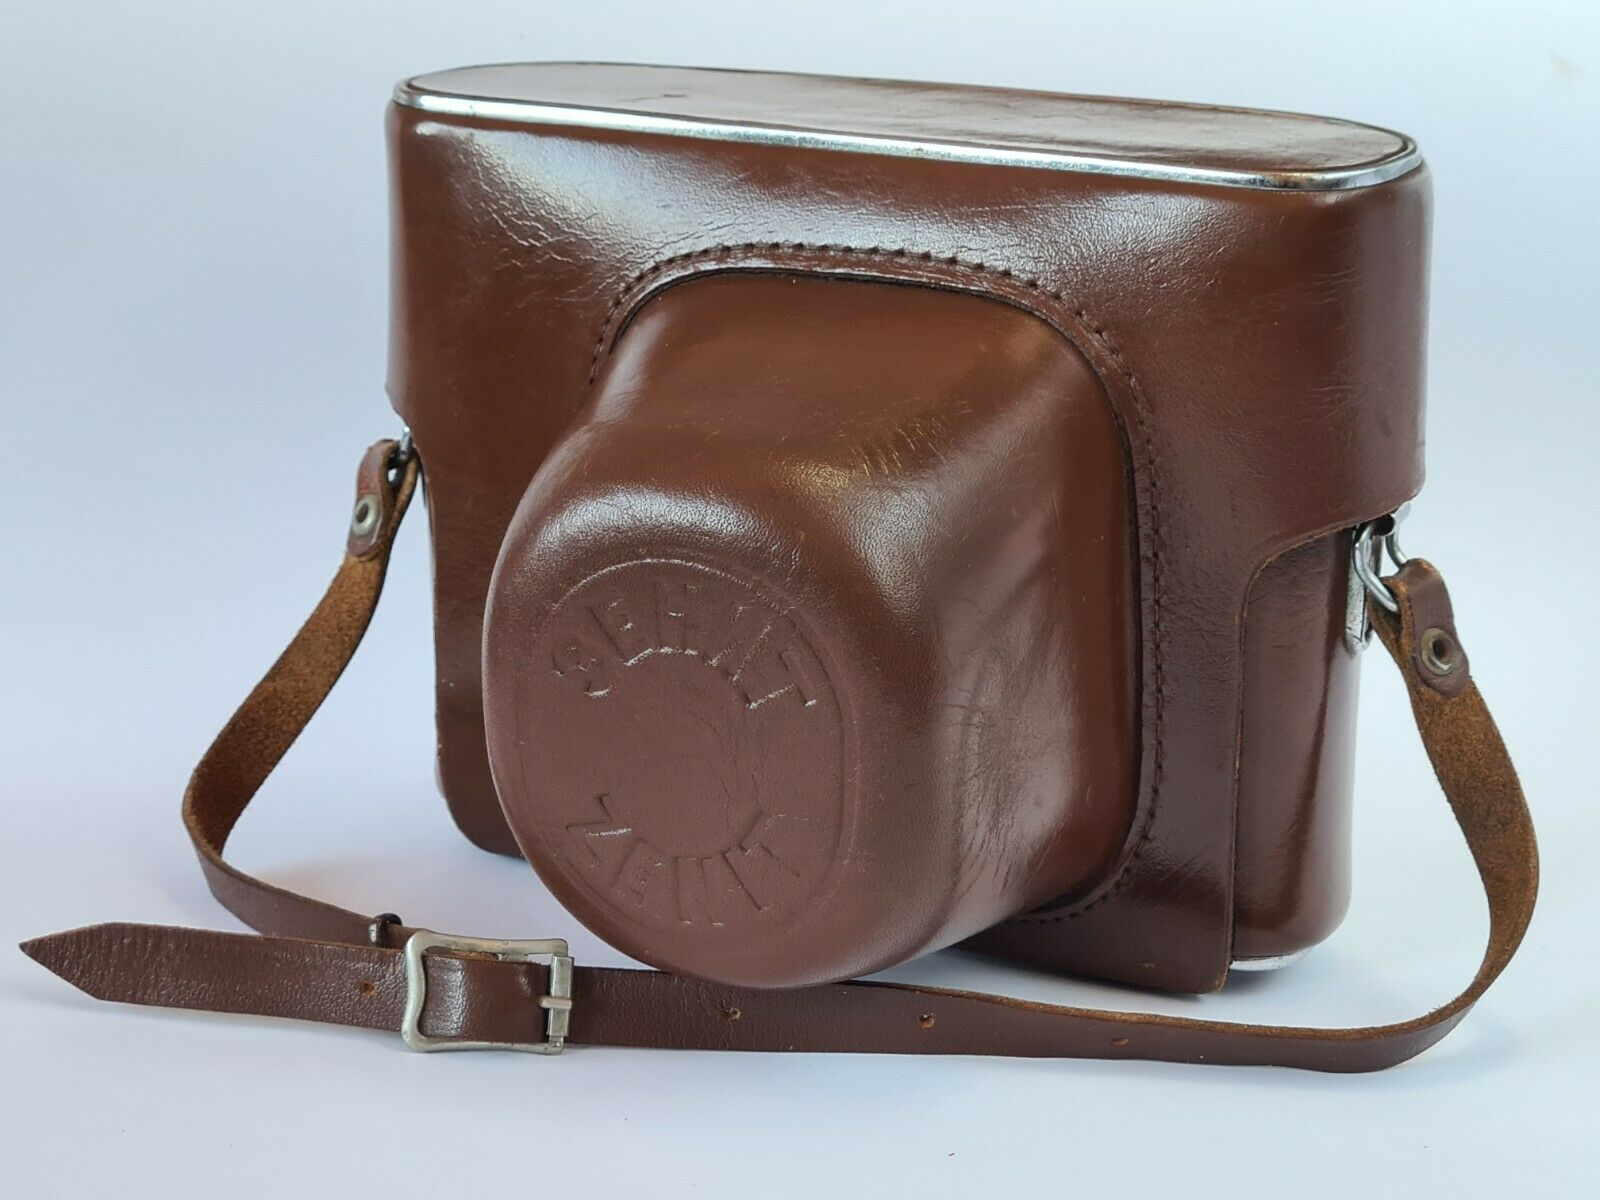 KMZ Zenit -B Brown Leather Camera Case for SLR With Hand Strap, Metal Trim, Exc+